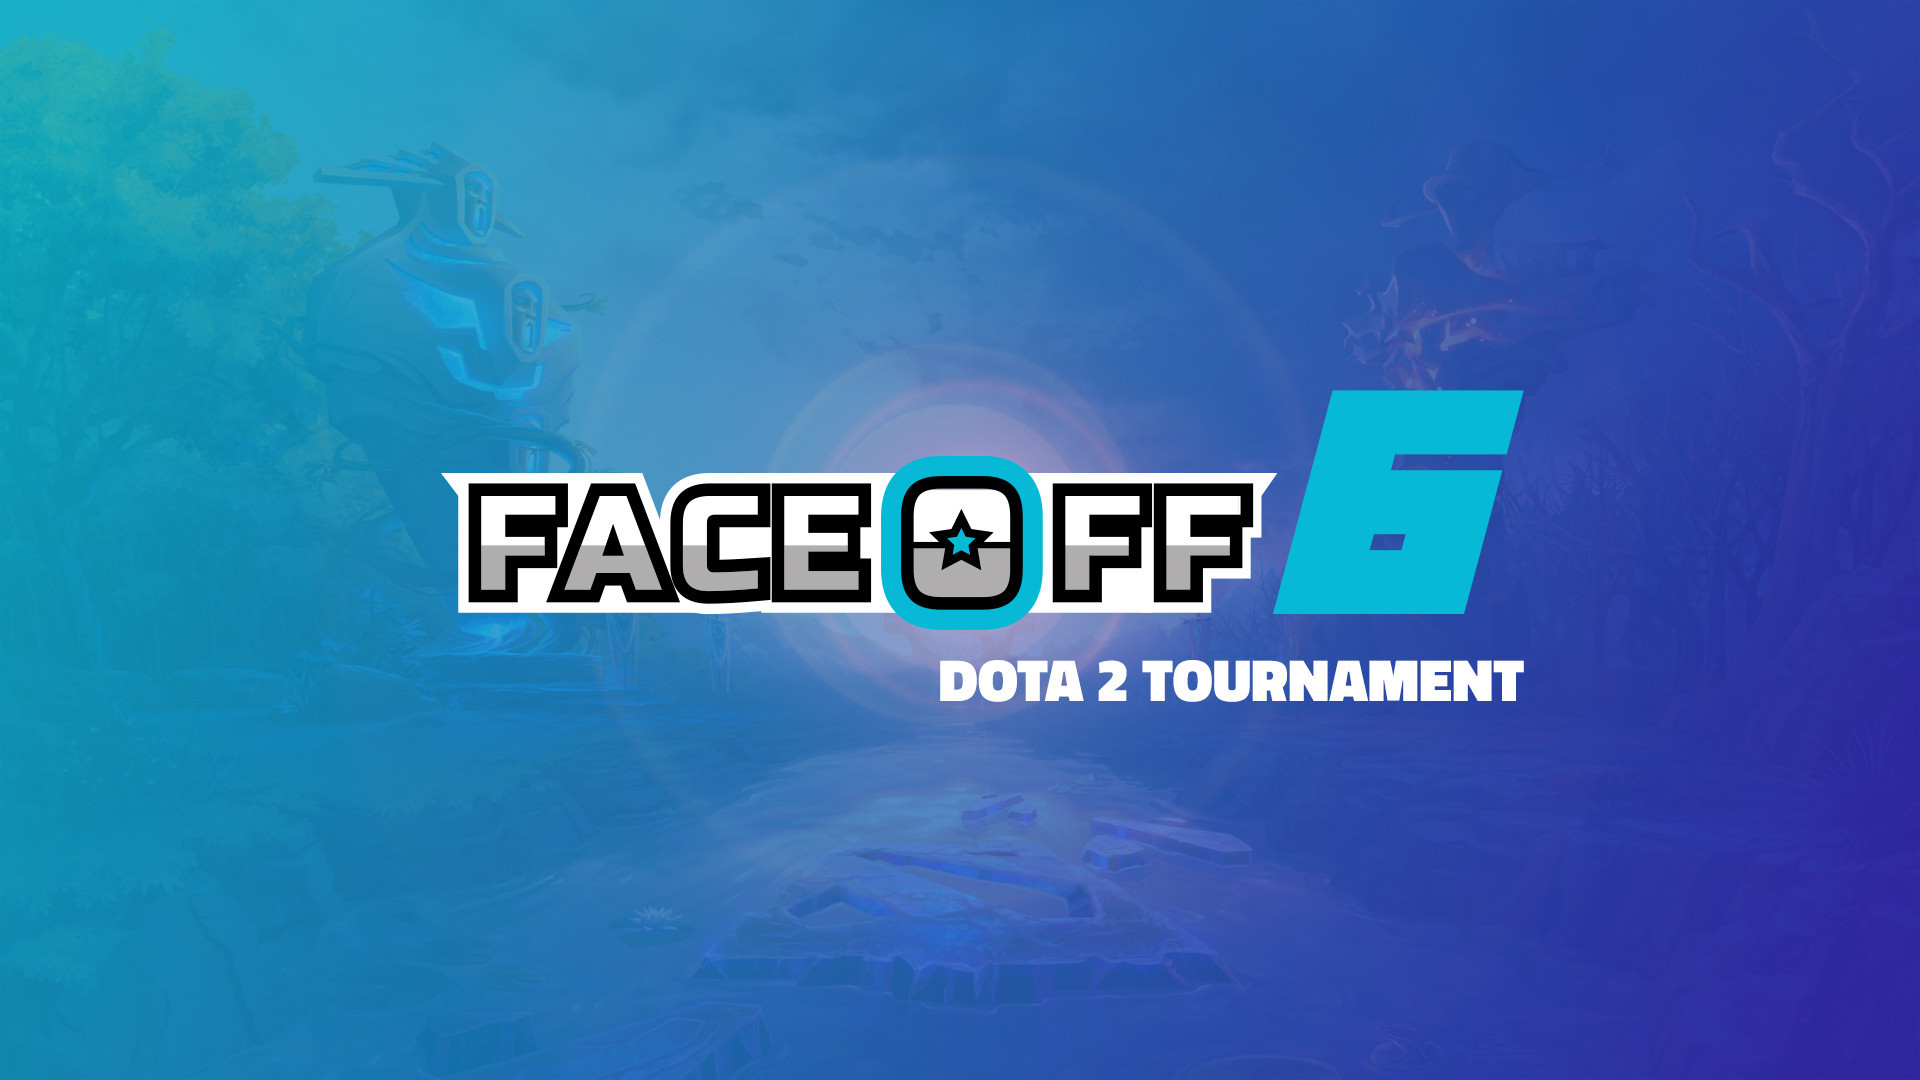 DaGameLeague esports news Faceoff 6 finally begins.. 8 new teams in action. banner